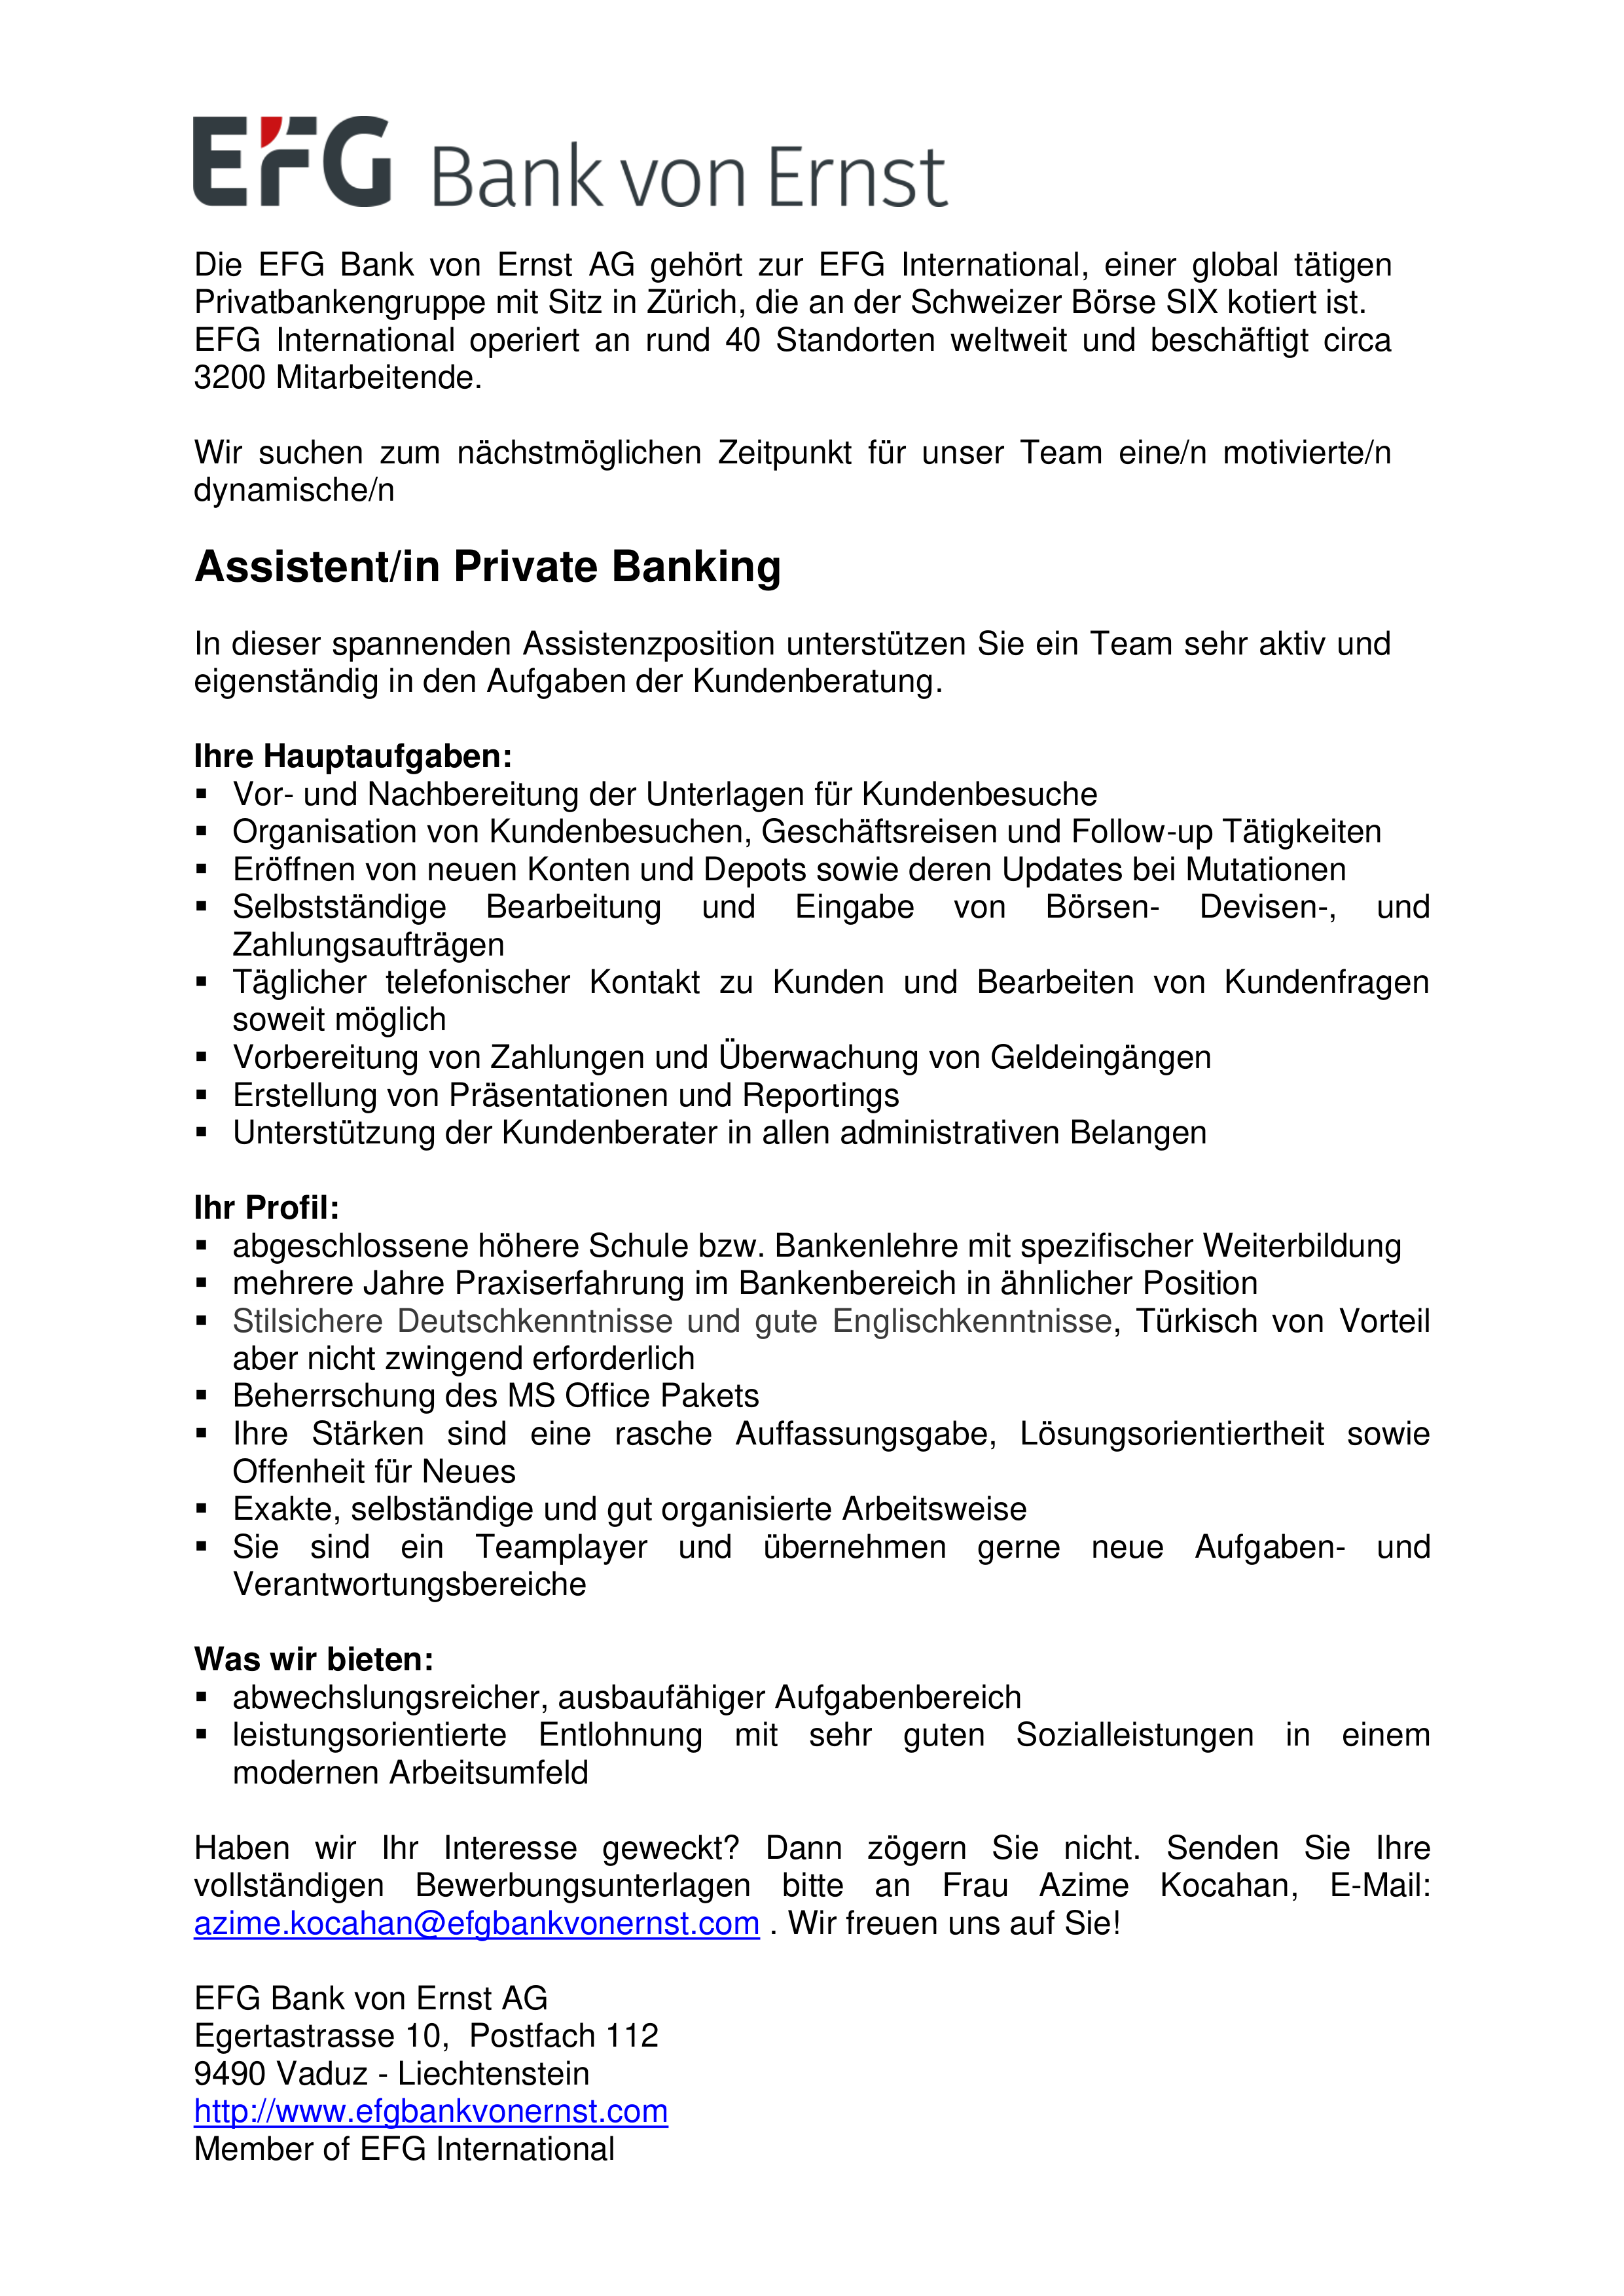 Assistent/in Private Banking